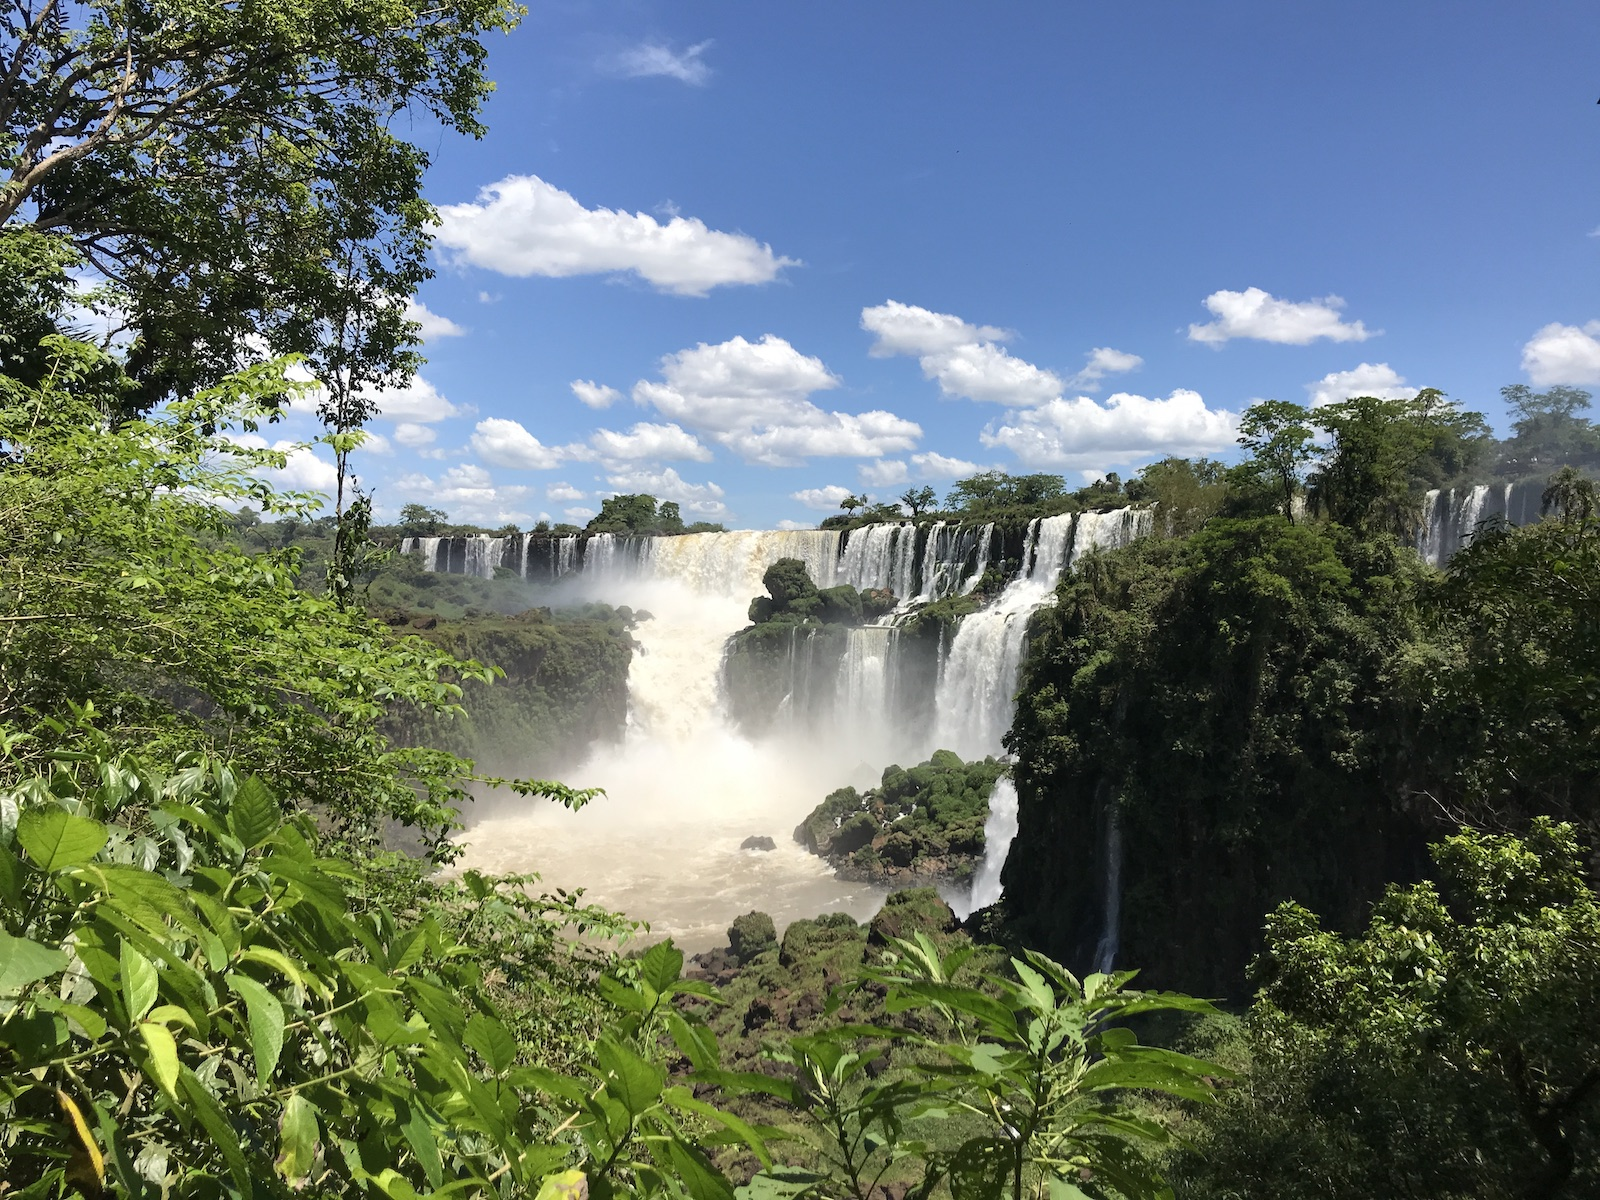 tourameo-trip-planning-honeymoon-brazil-iguacu-falls